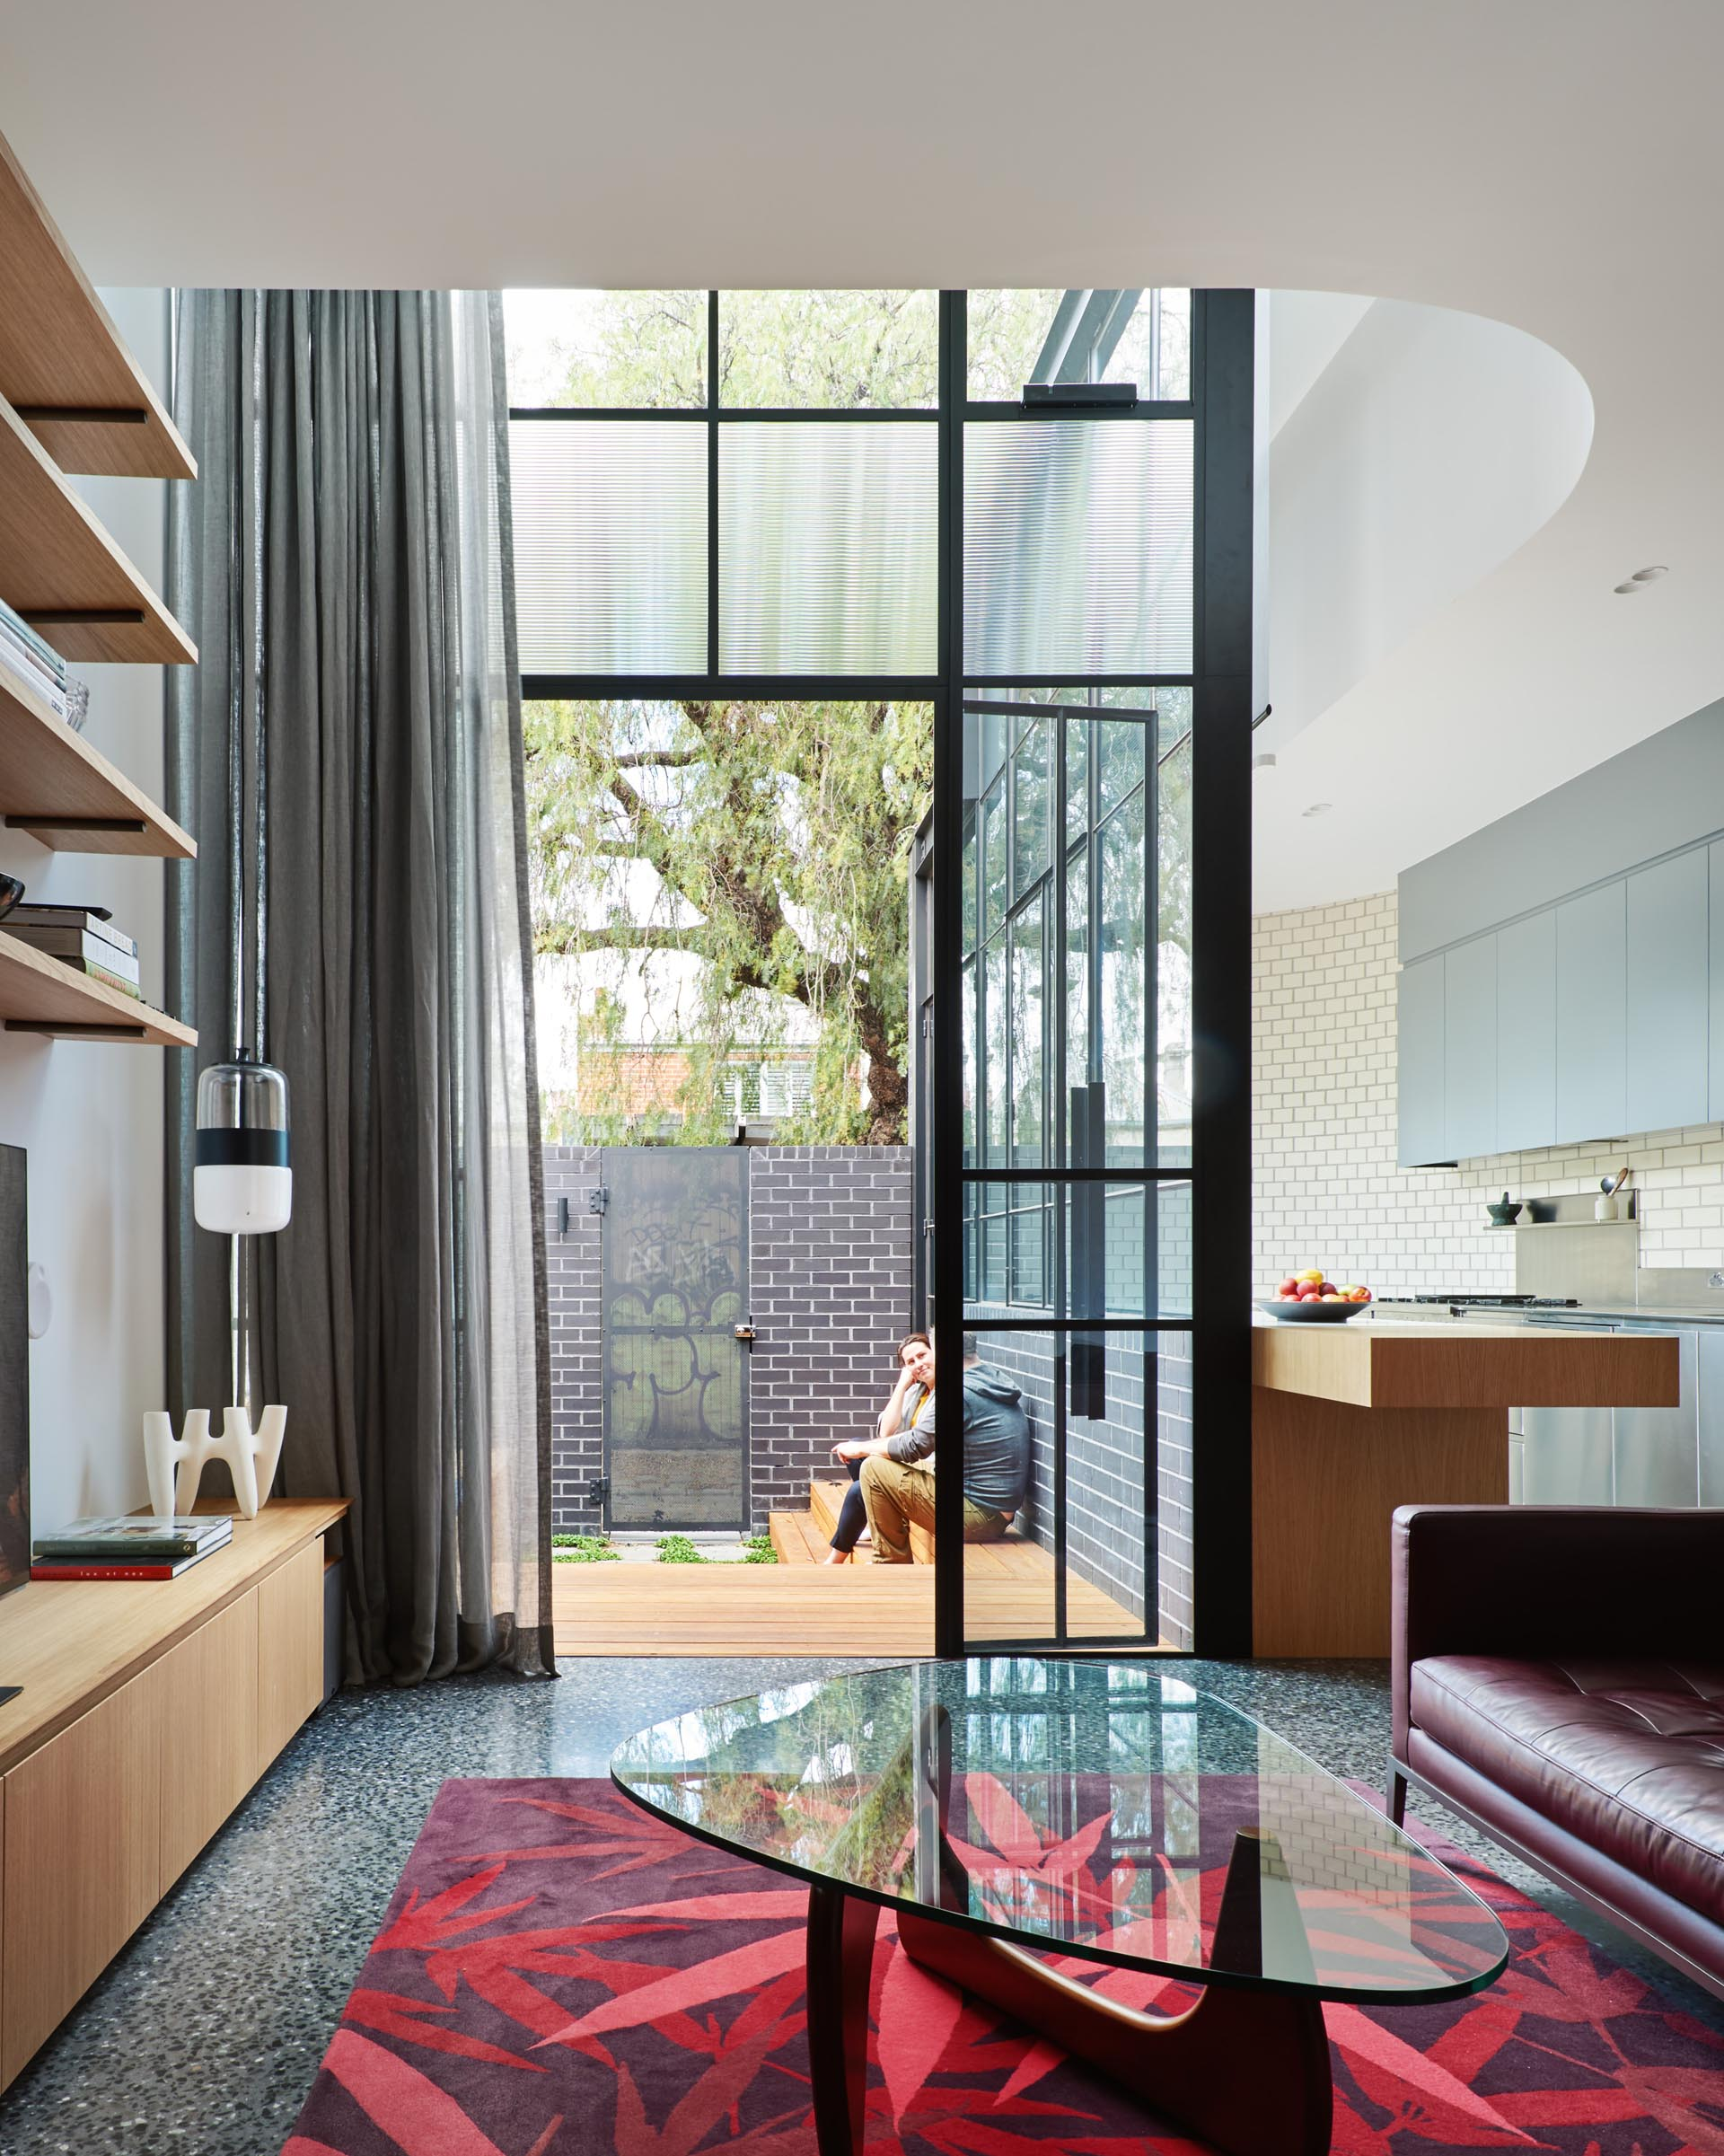 Black blinds and gray curtains can be closed for privacy when needed in this house addition with glass walls.